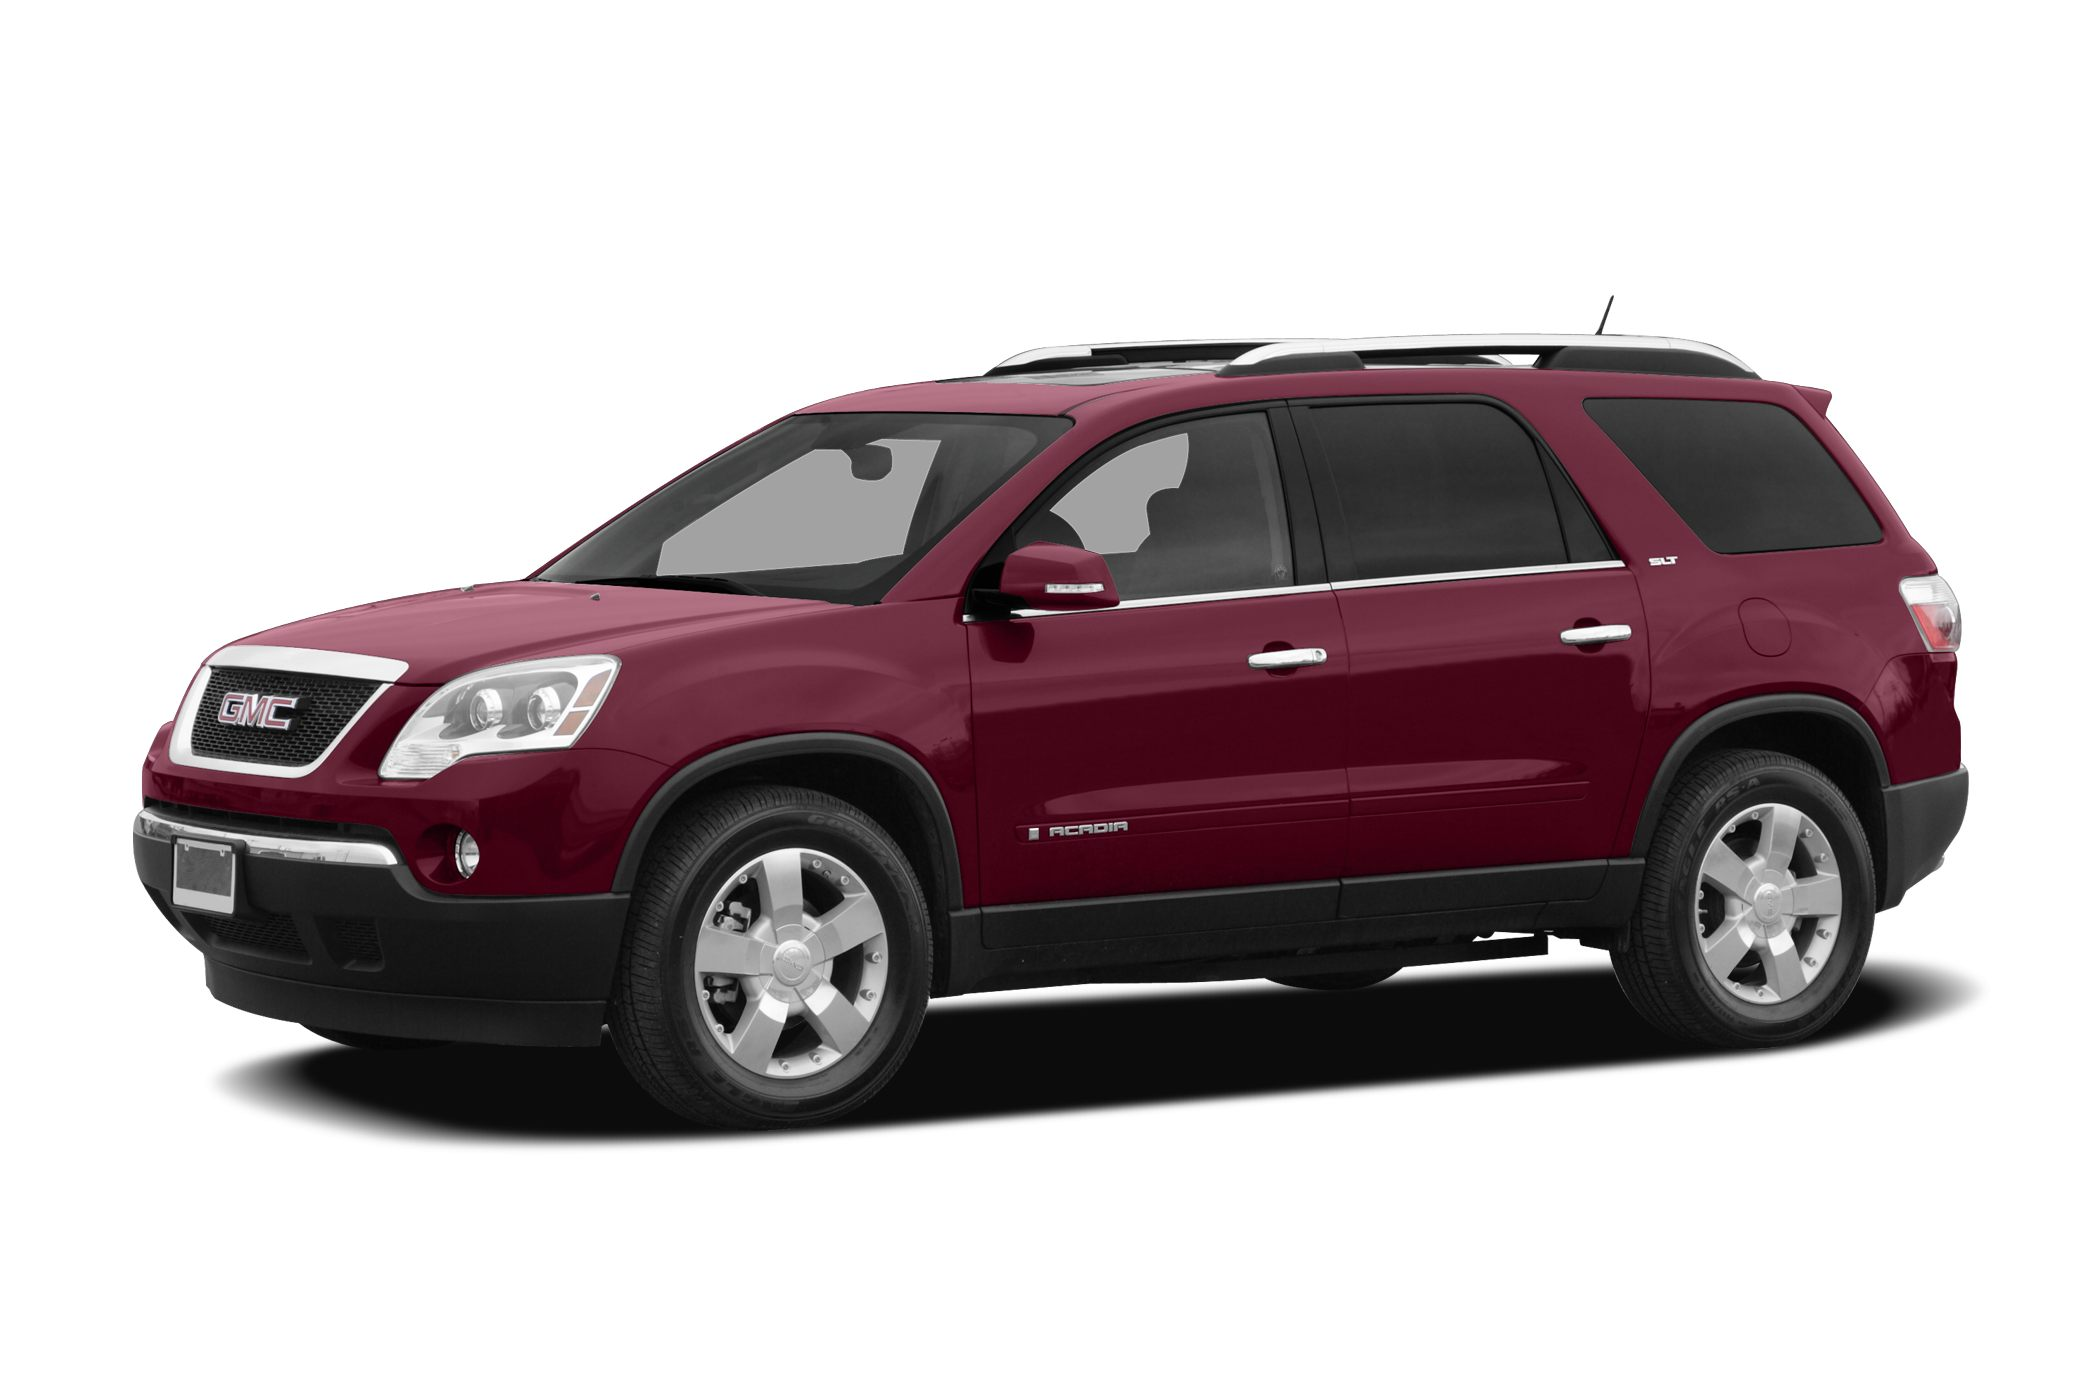 2007 GMC Acadia SLE ITS OUR 50TH ANNIVERSARY HERE AT MARTYS AND TO CELEBRATE WERE OFFERING THE MO